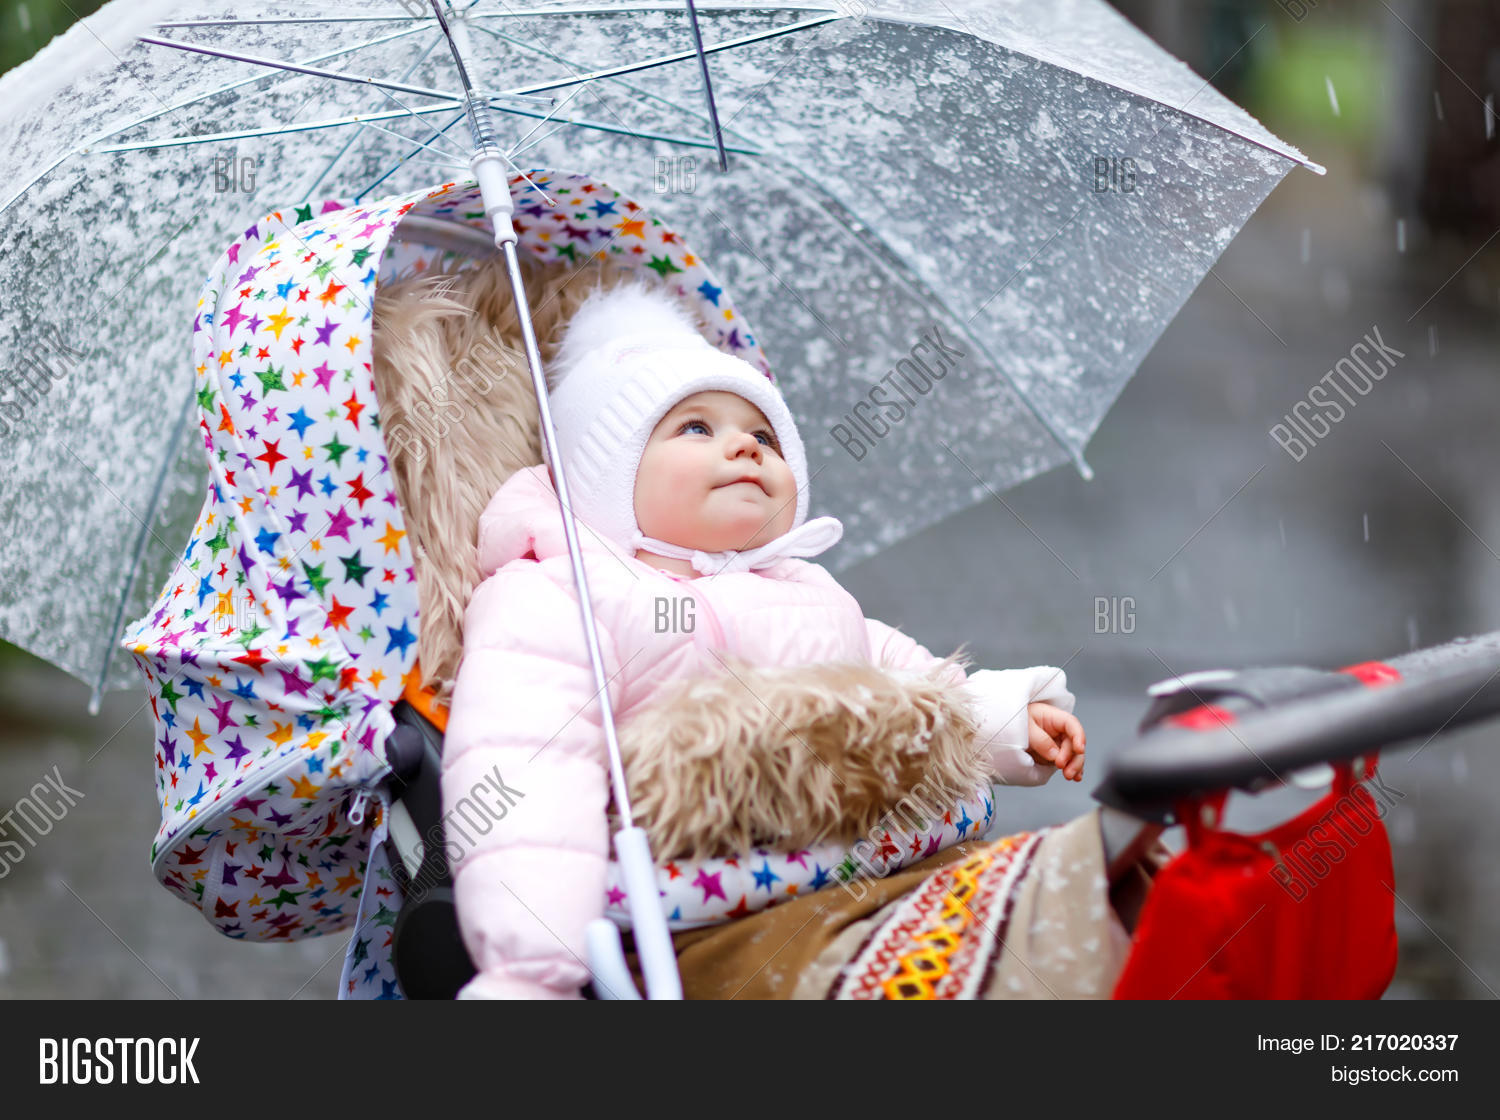 b2d5457f8428 Cute Little Beautiful Image   Photo (Free Trial)